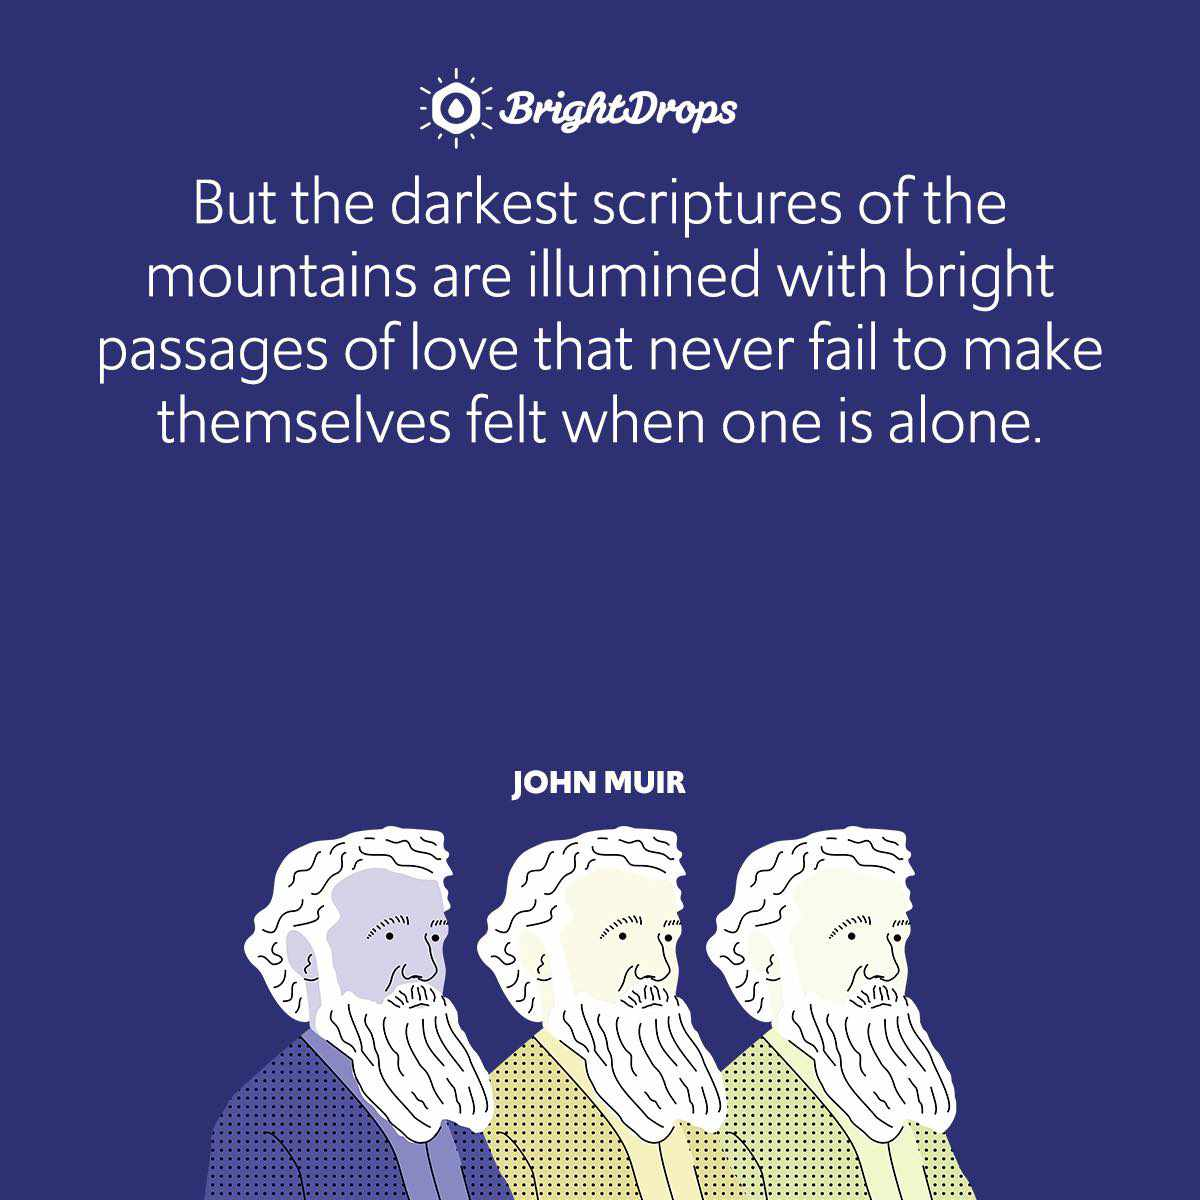 But the darkest scriptures of the mountains are illumined with bright passages of love that never fail to make themselves felt when one is alone.